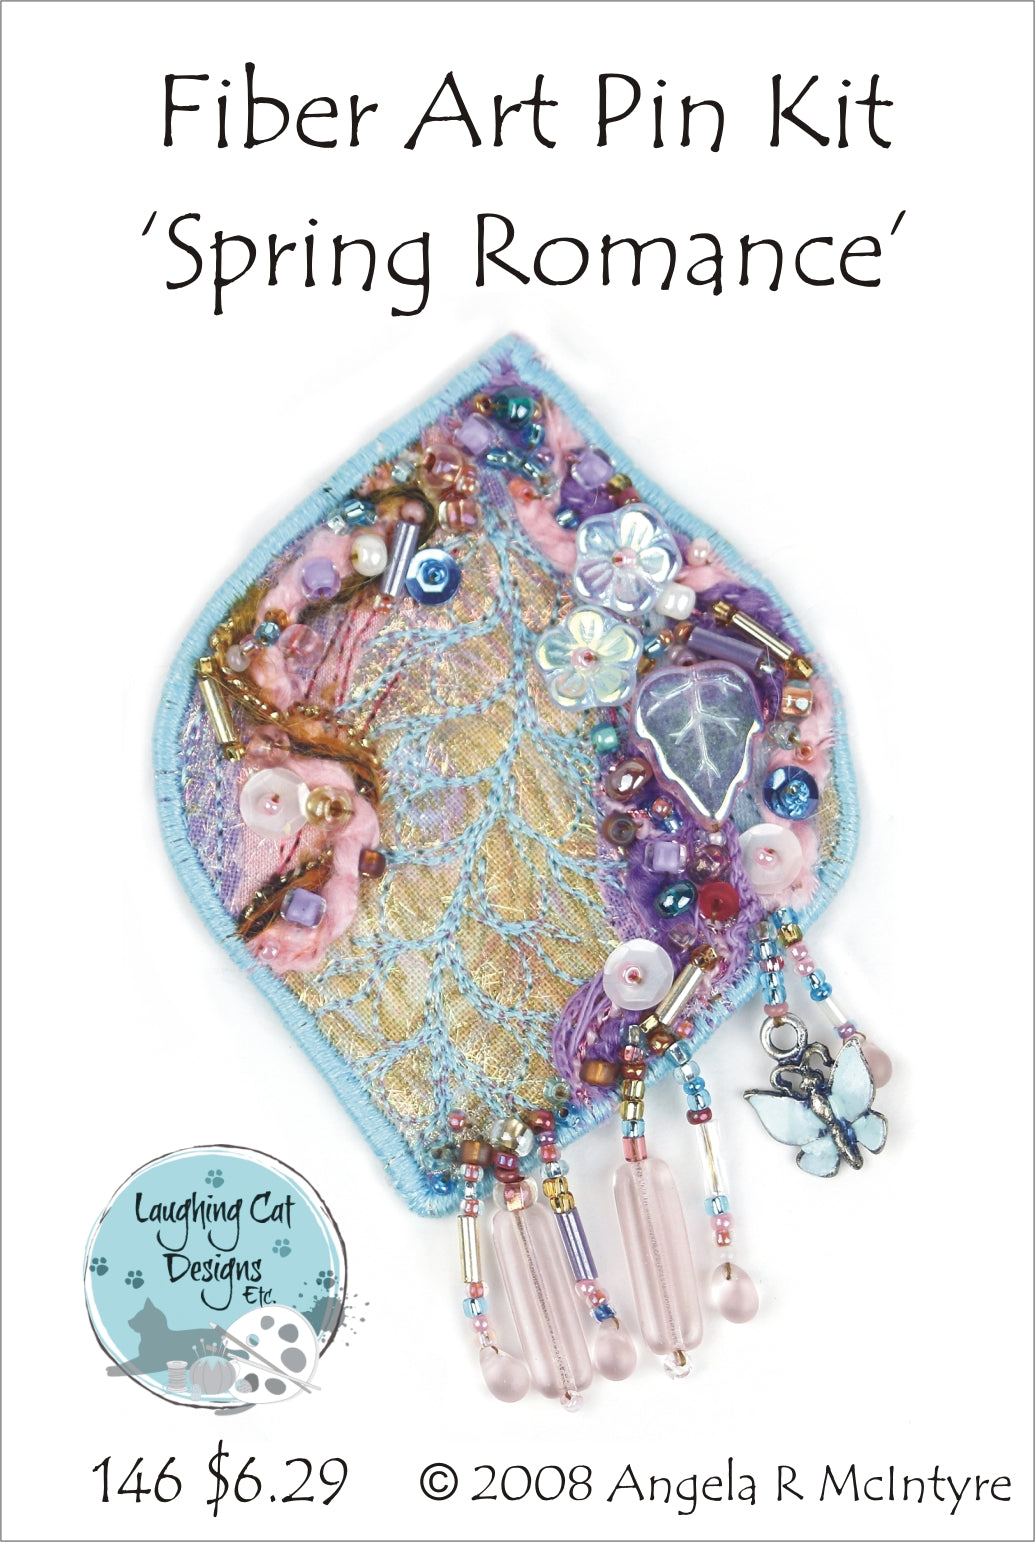 Fiber Art Pin Kit: Spring Romance